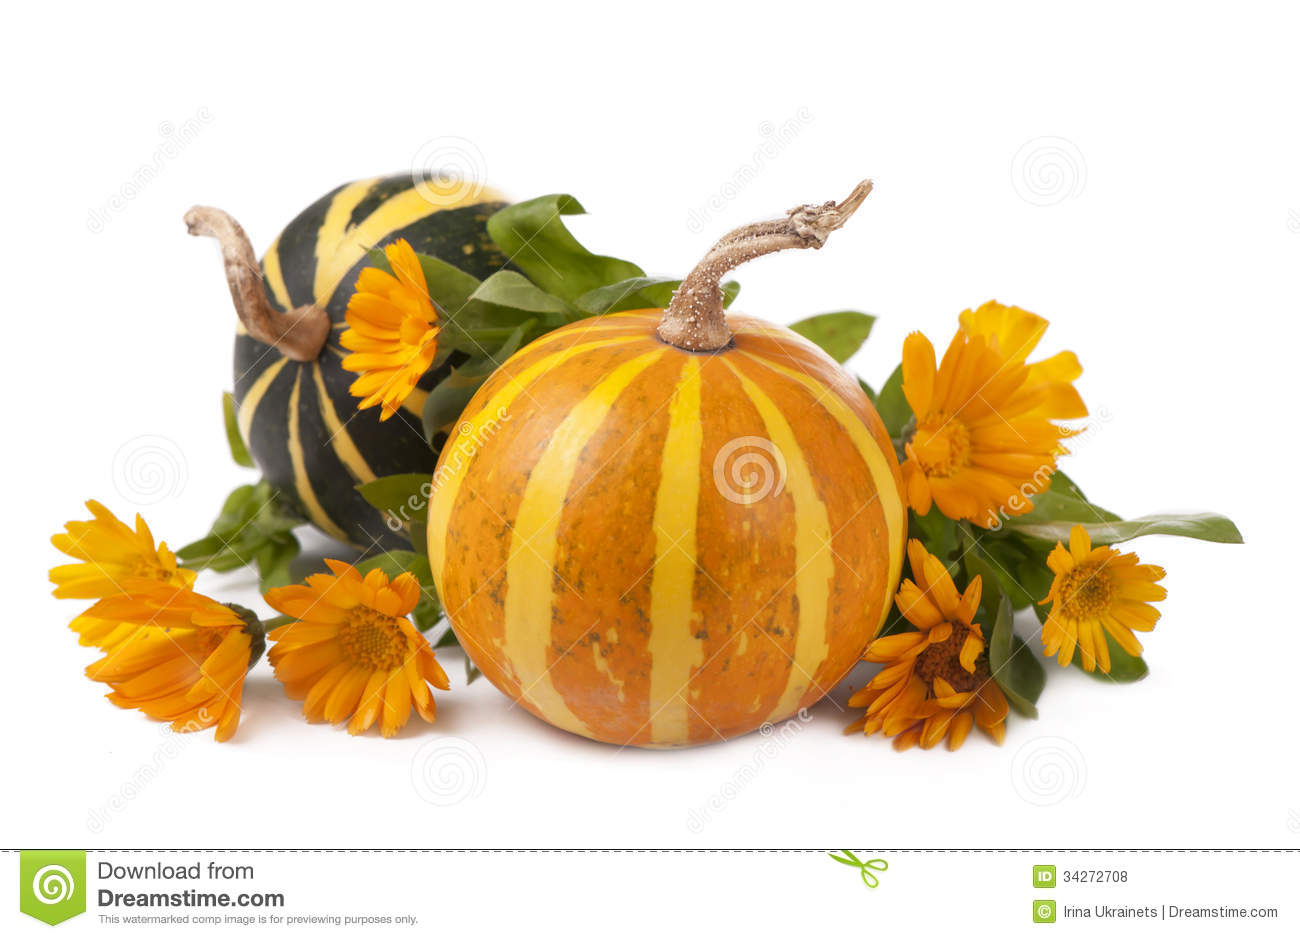 Pumpkins Royalty Free Stock Photos - Image: 34272708